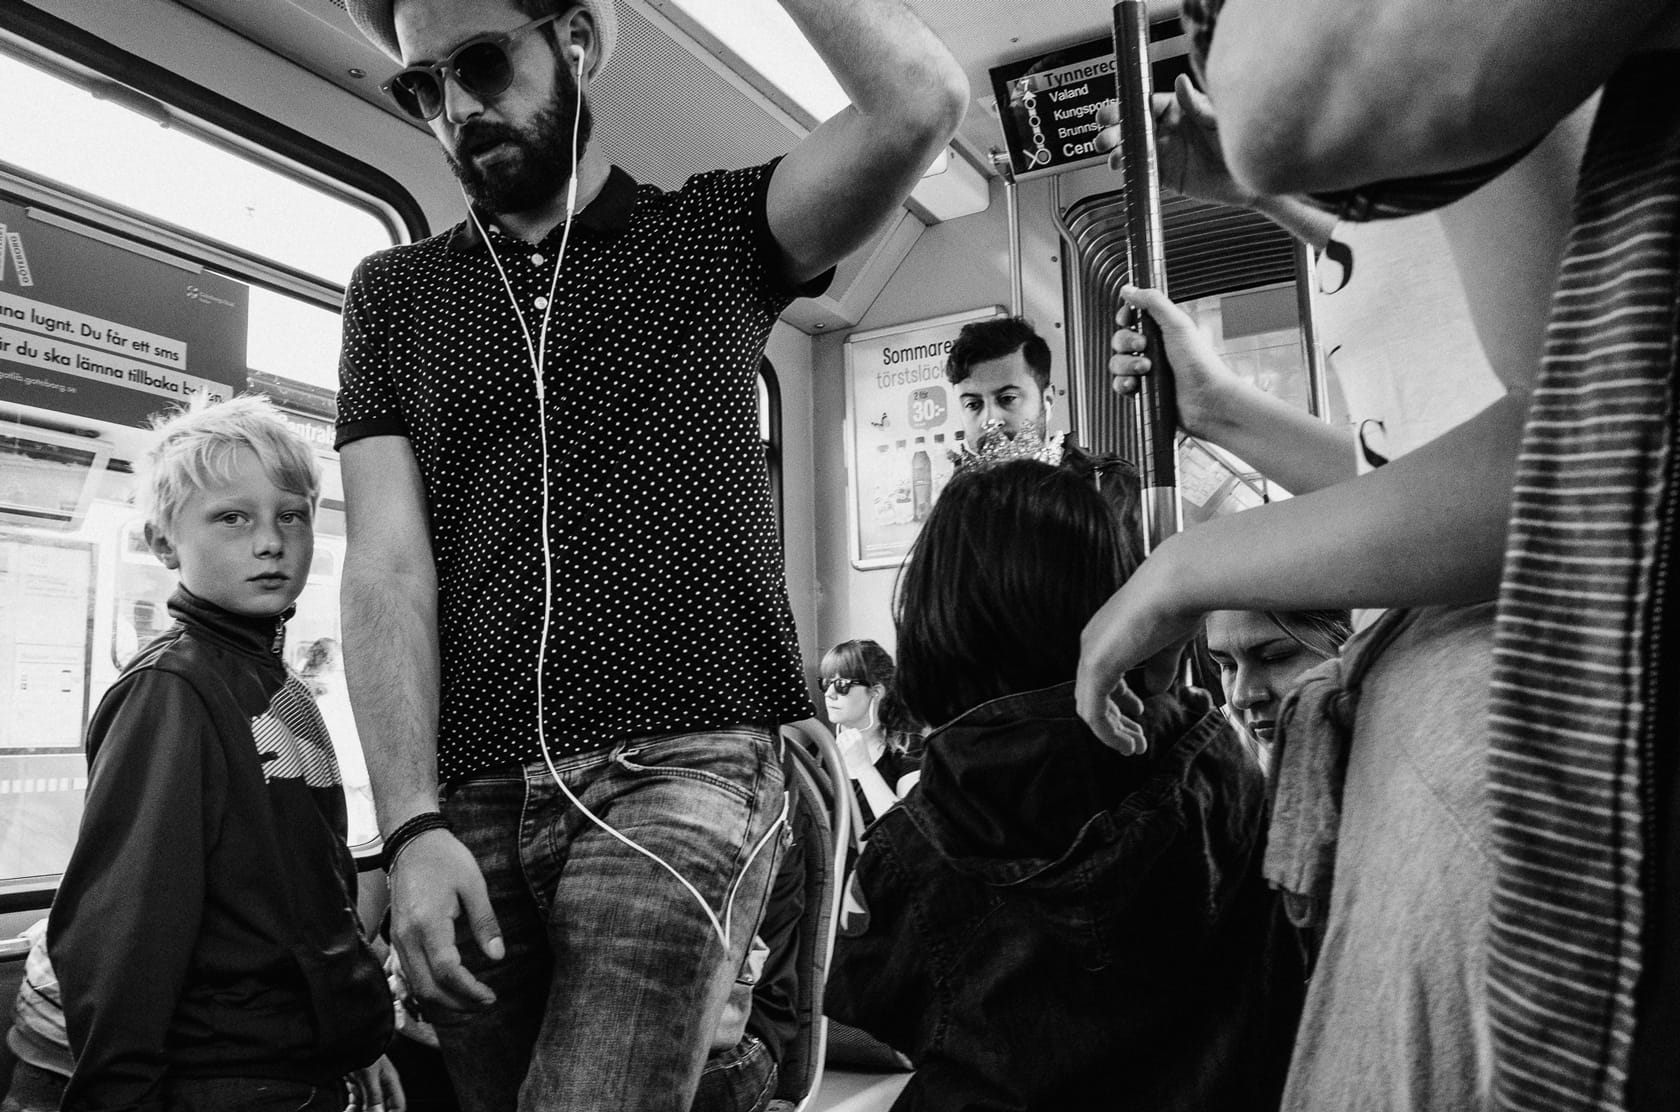 'On The Tram' by Linus Andersson